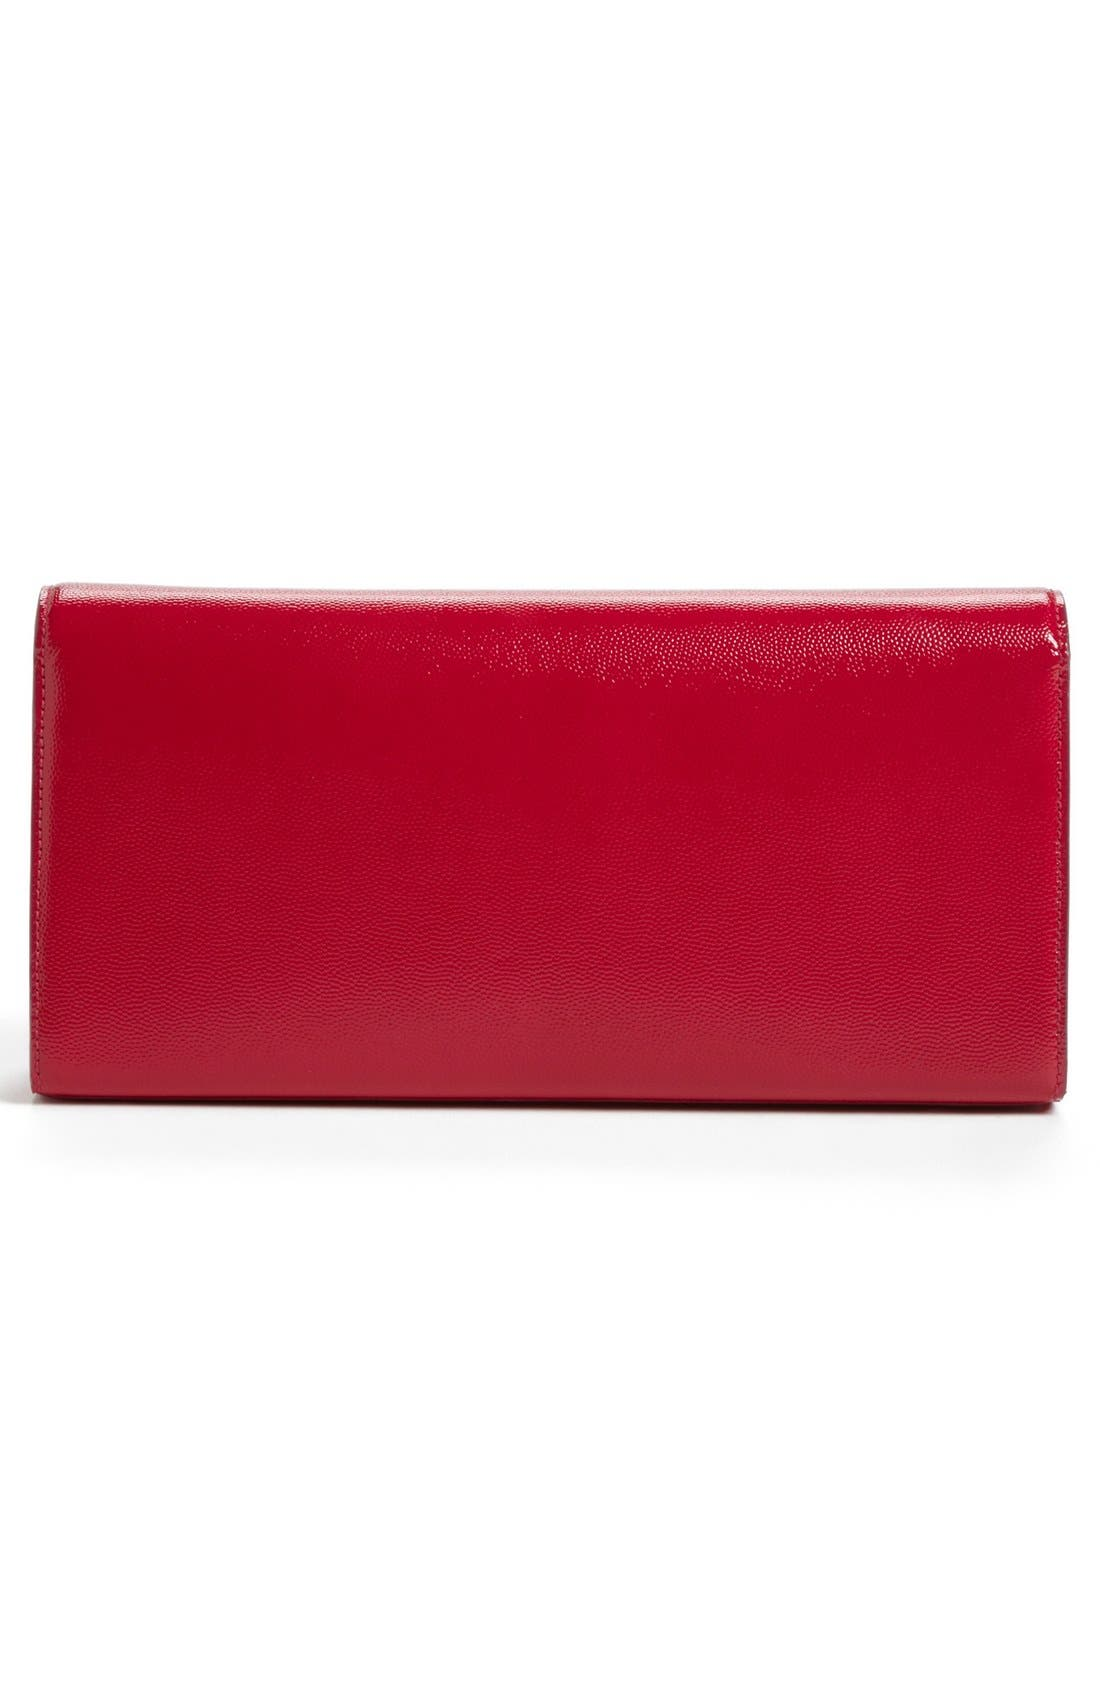 Alternate Image 3  - Saint Laurent 'Cassandre - Vernis' Leather Clutch